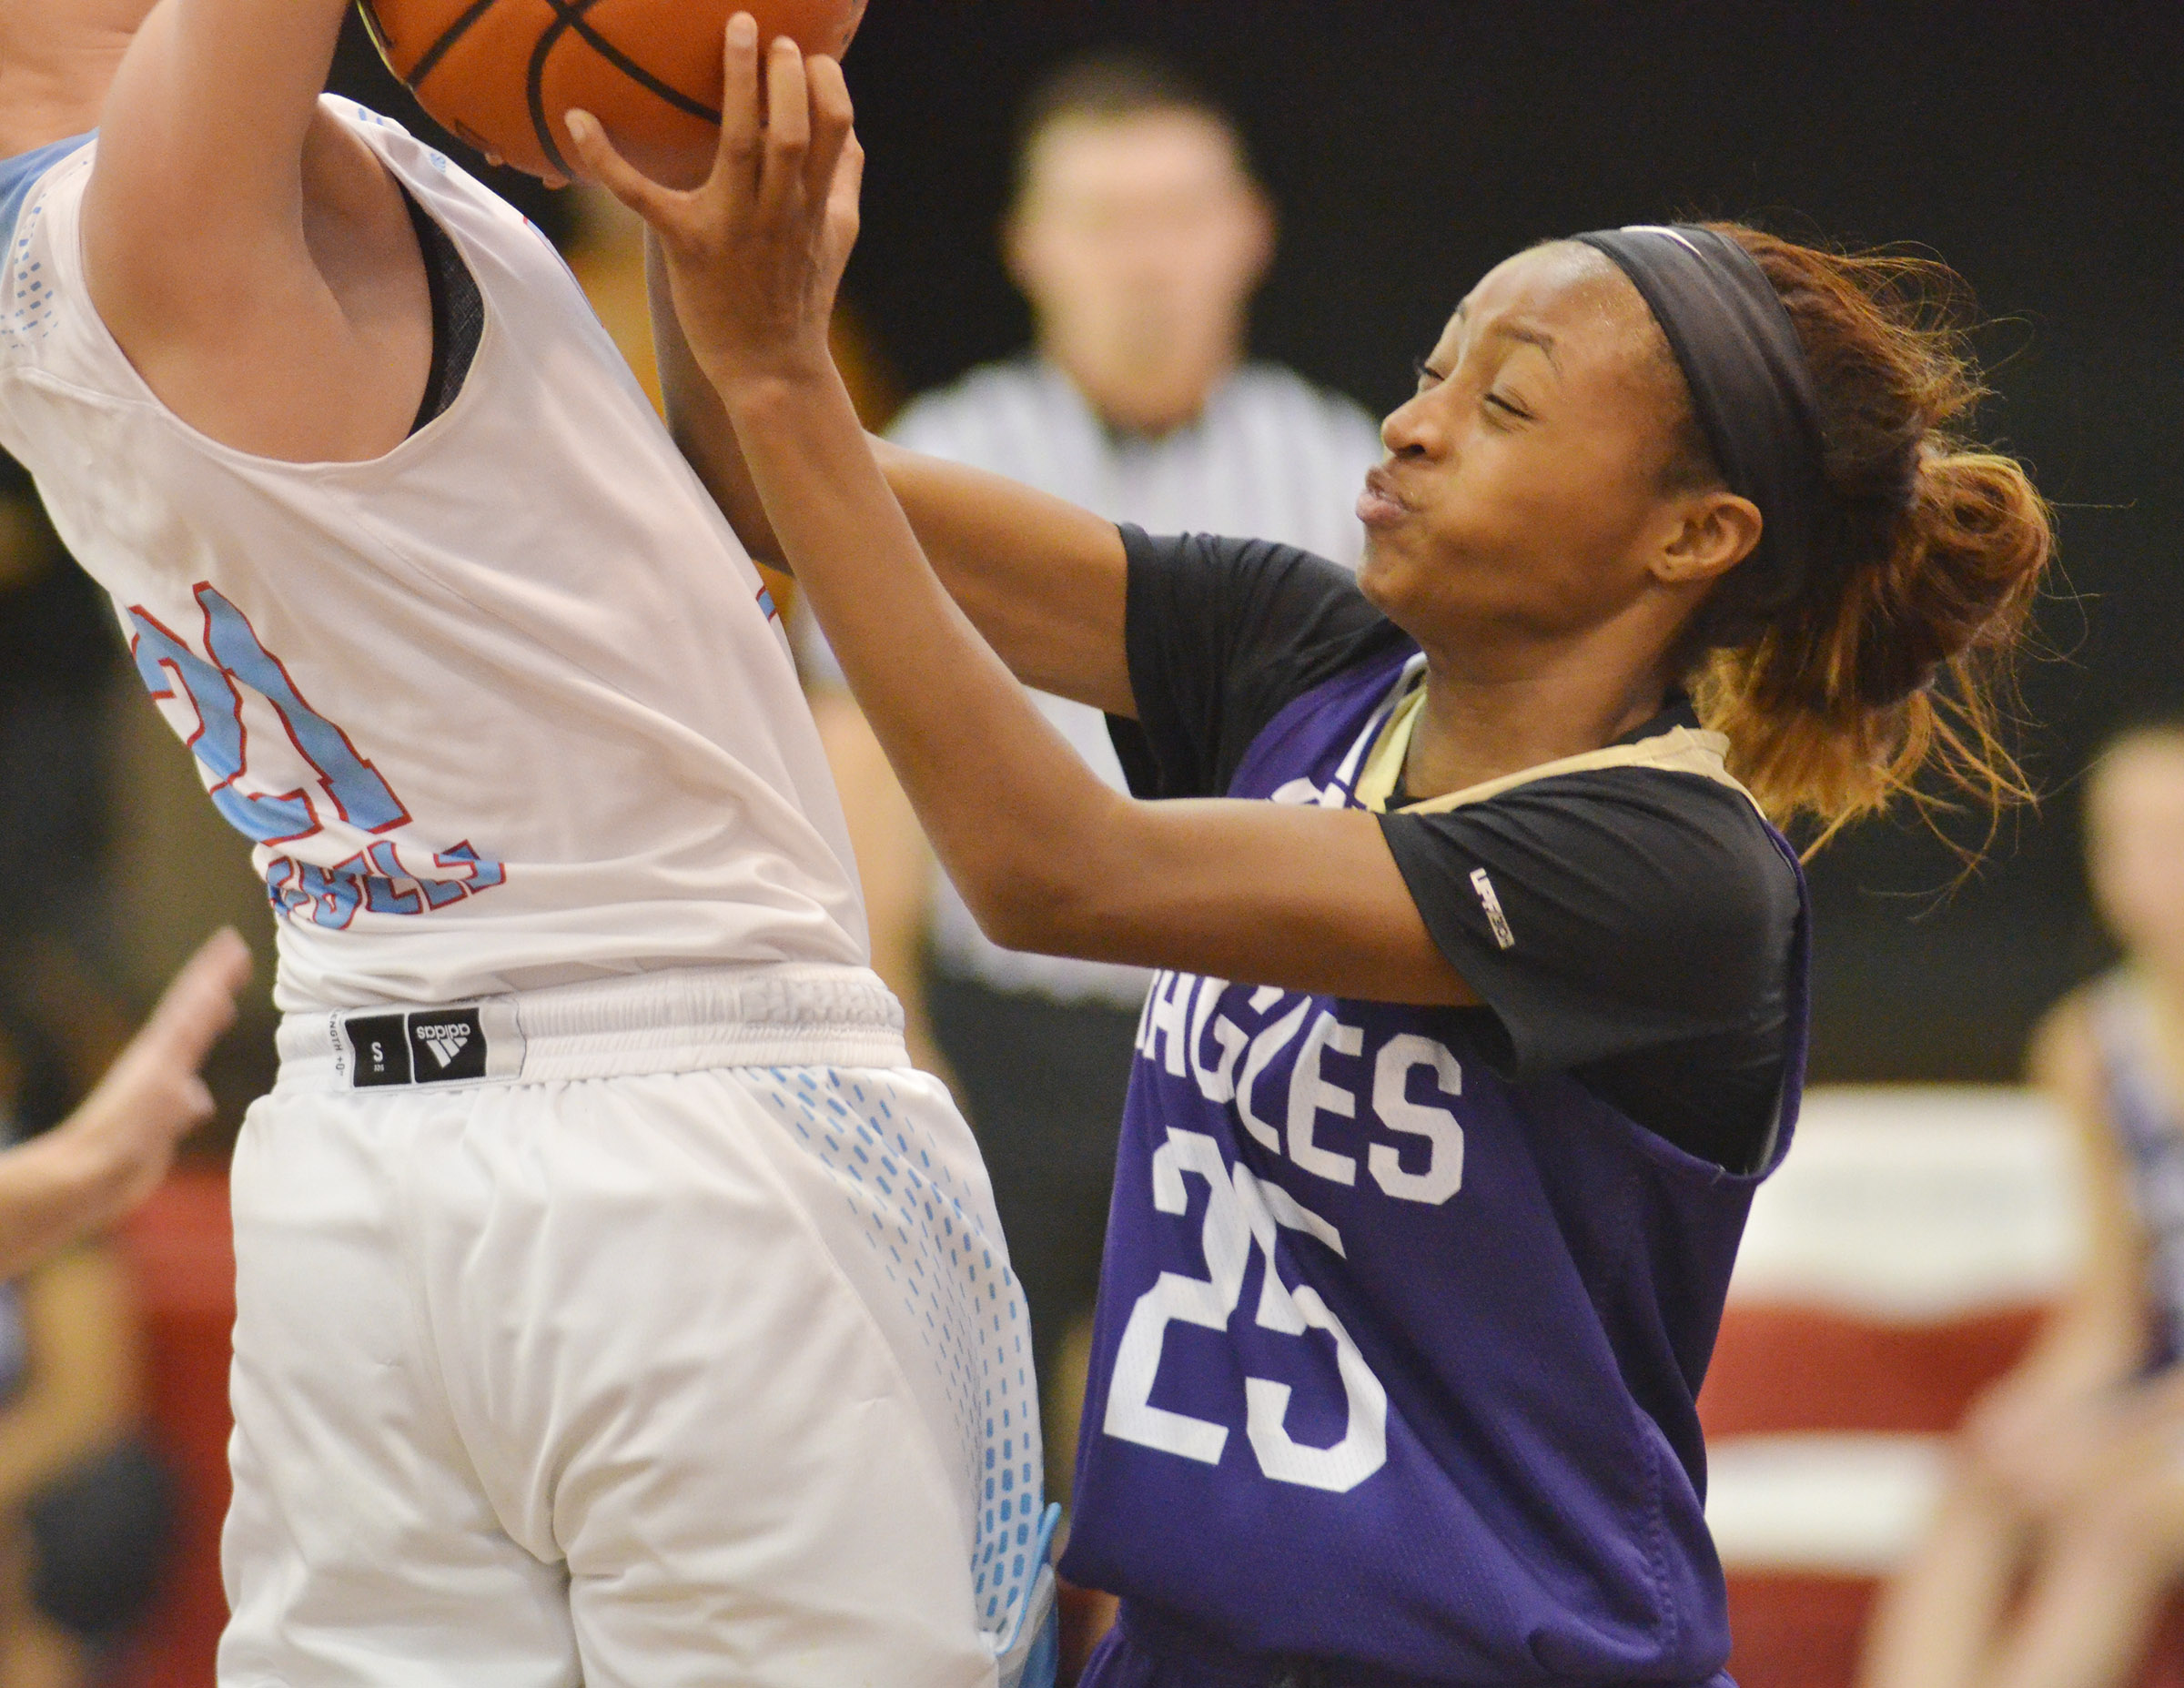 CMS eighth-grader Bri Gowdy fights for the ball.